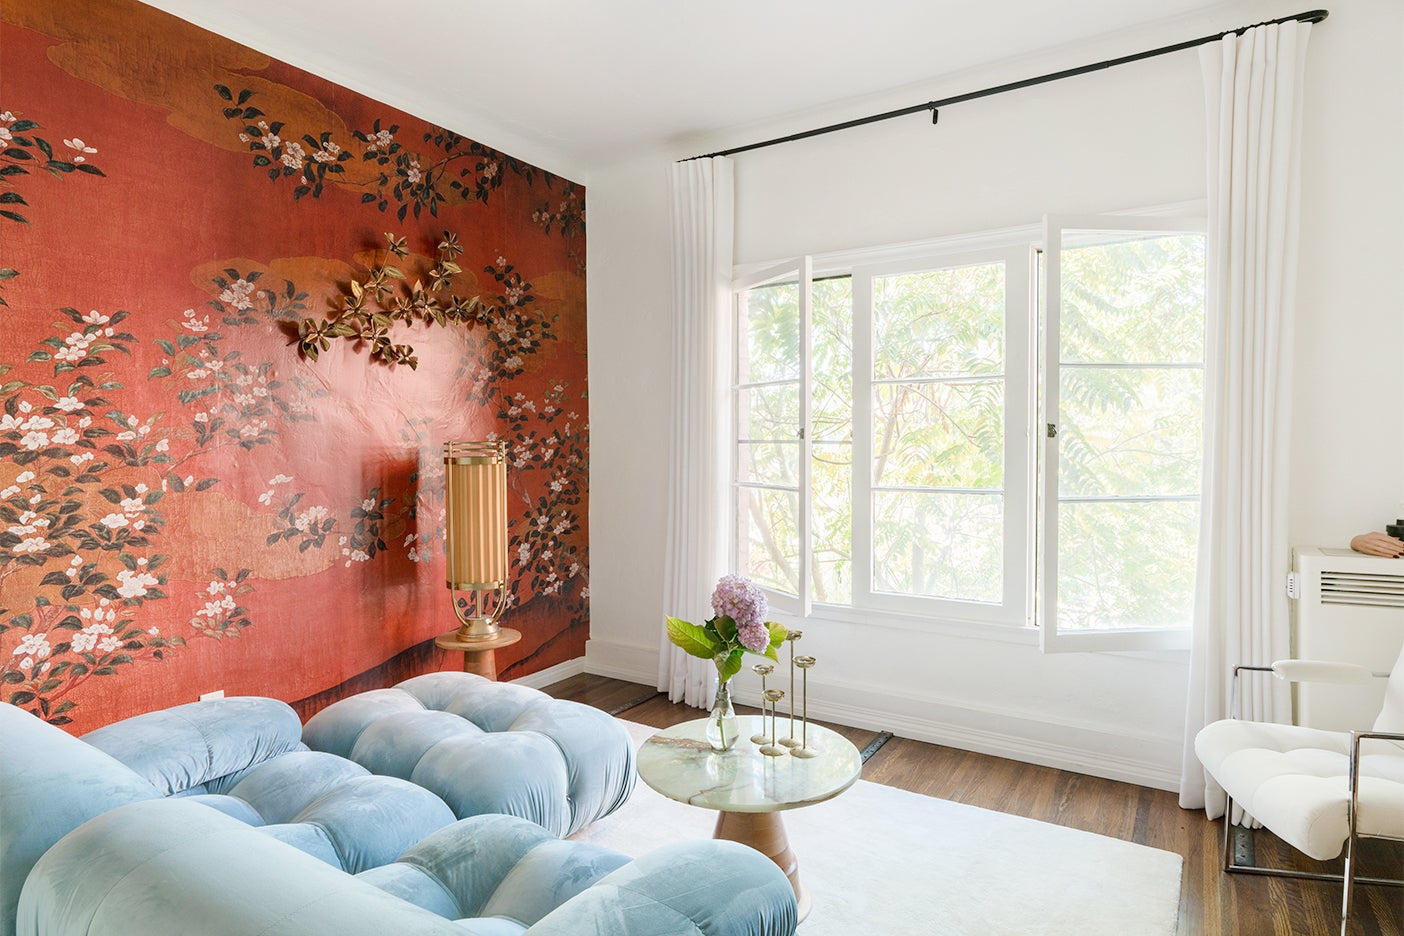 blue sofa in room with red floral wallpaper